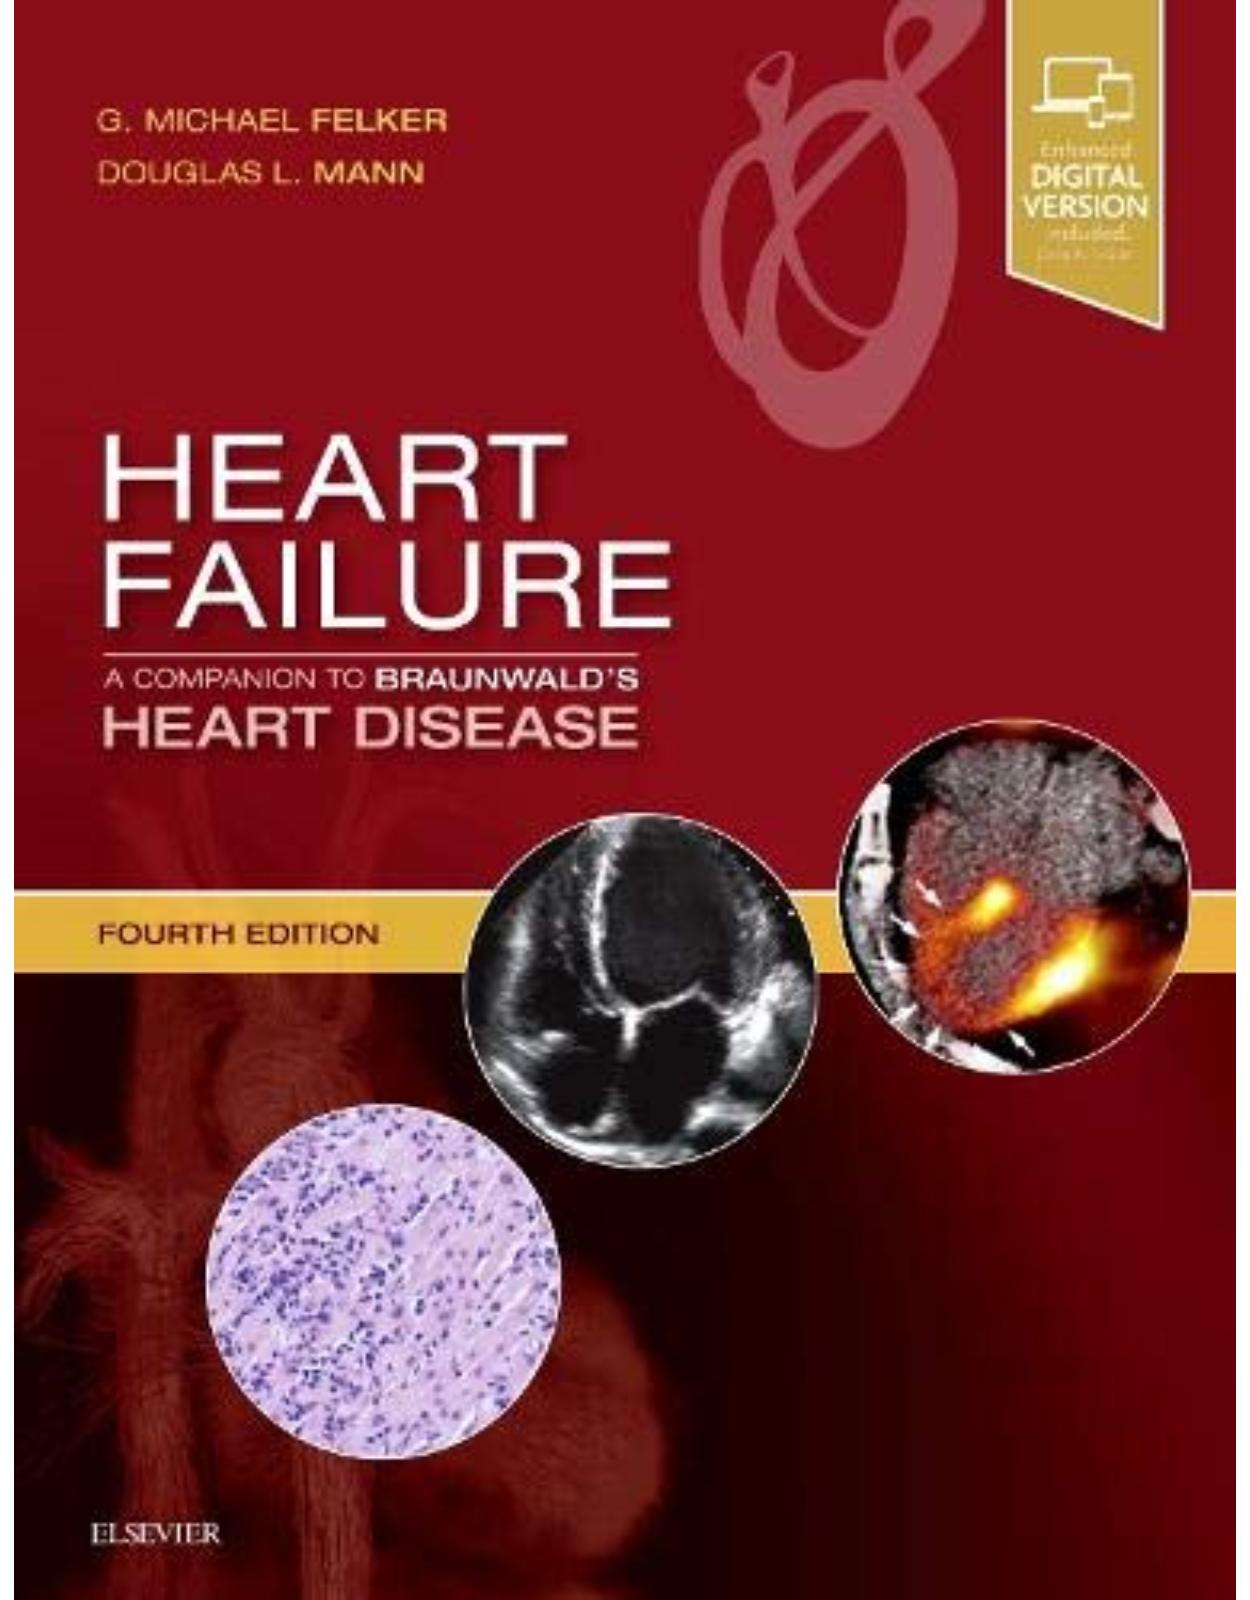 Heart Failure: A Companion to Braunwald's Heart Disease, 4th Edition